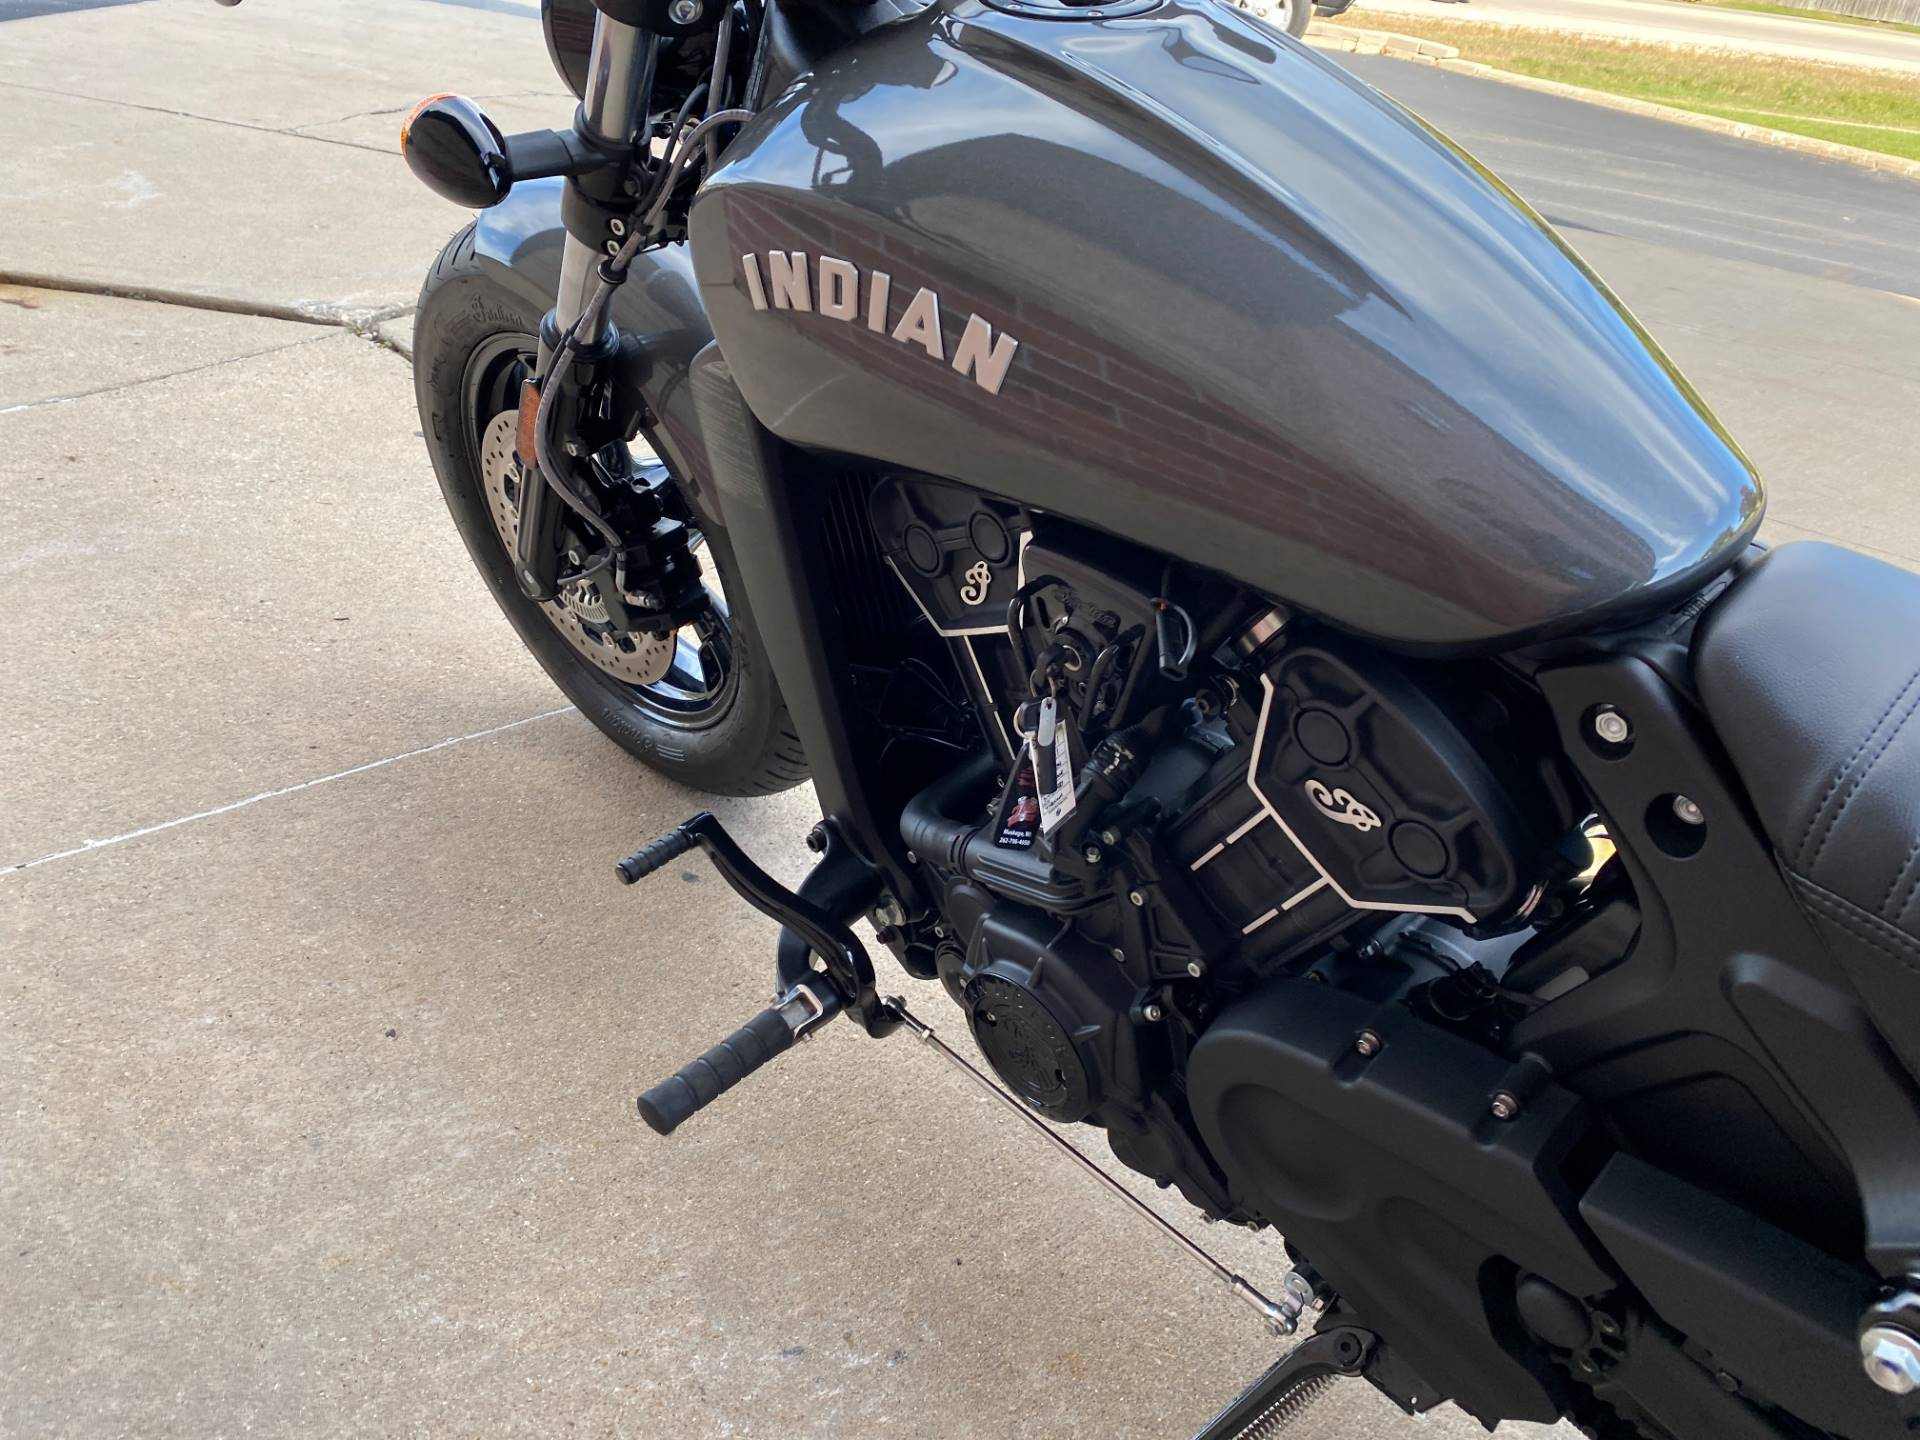 New 2021 Indian Scout Bobber Sixty Abs Motorcycles In Muskego Wi Stock Number Ind165071